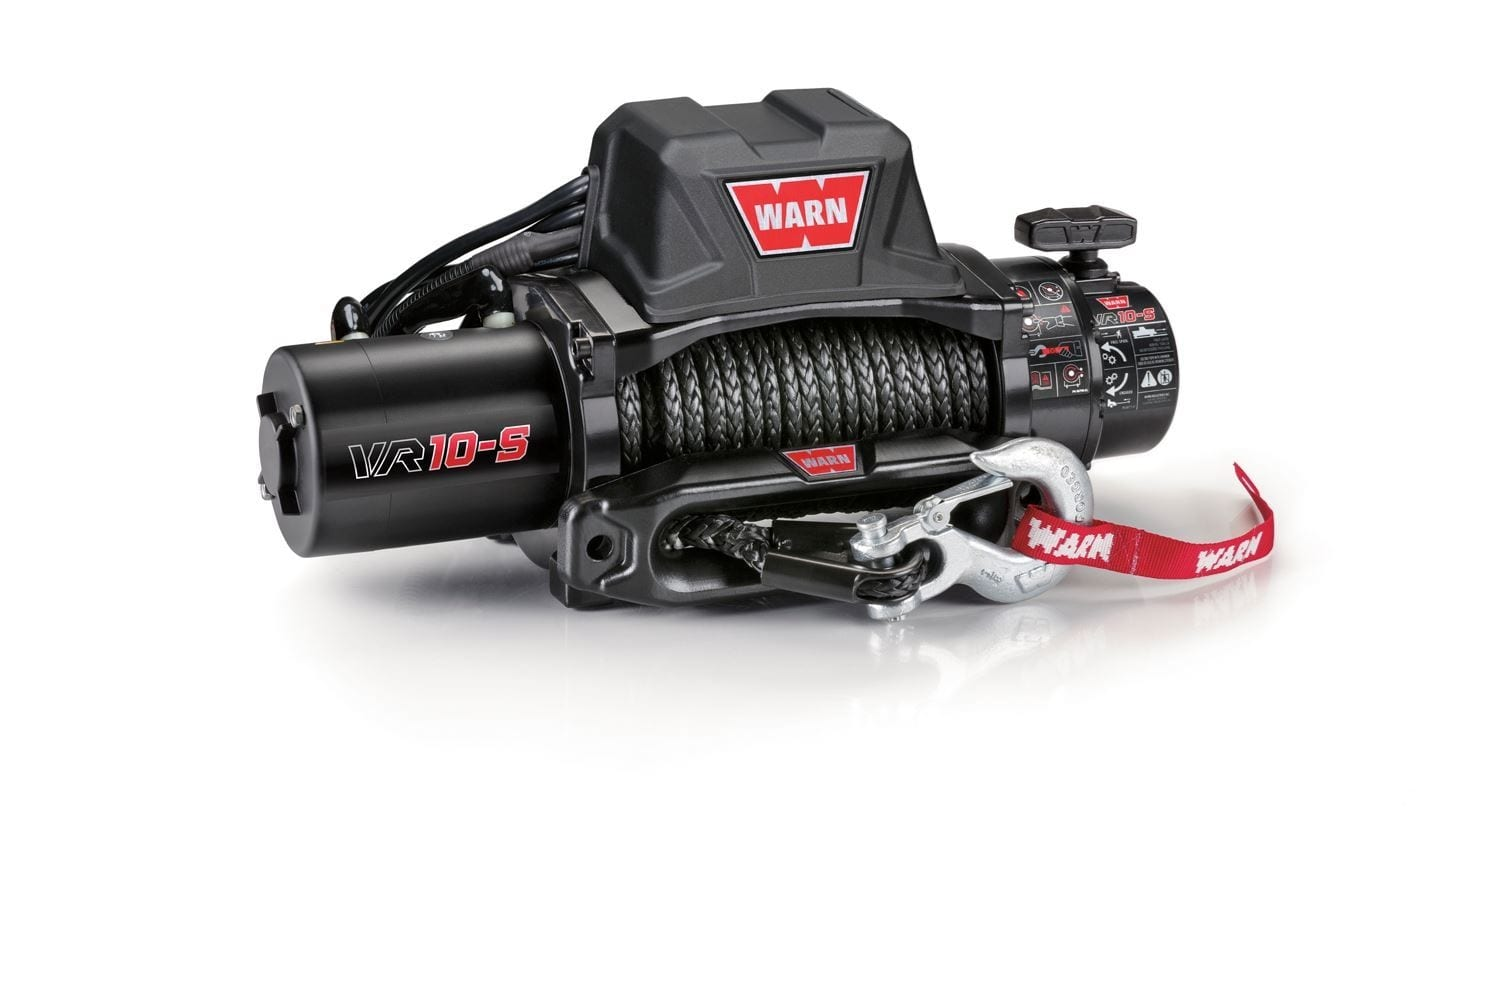 Warn Vr10 S Winch Pf Adventure